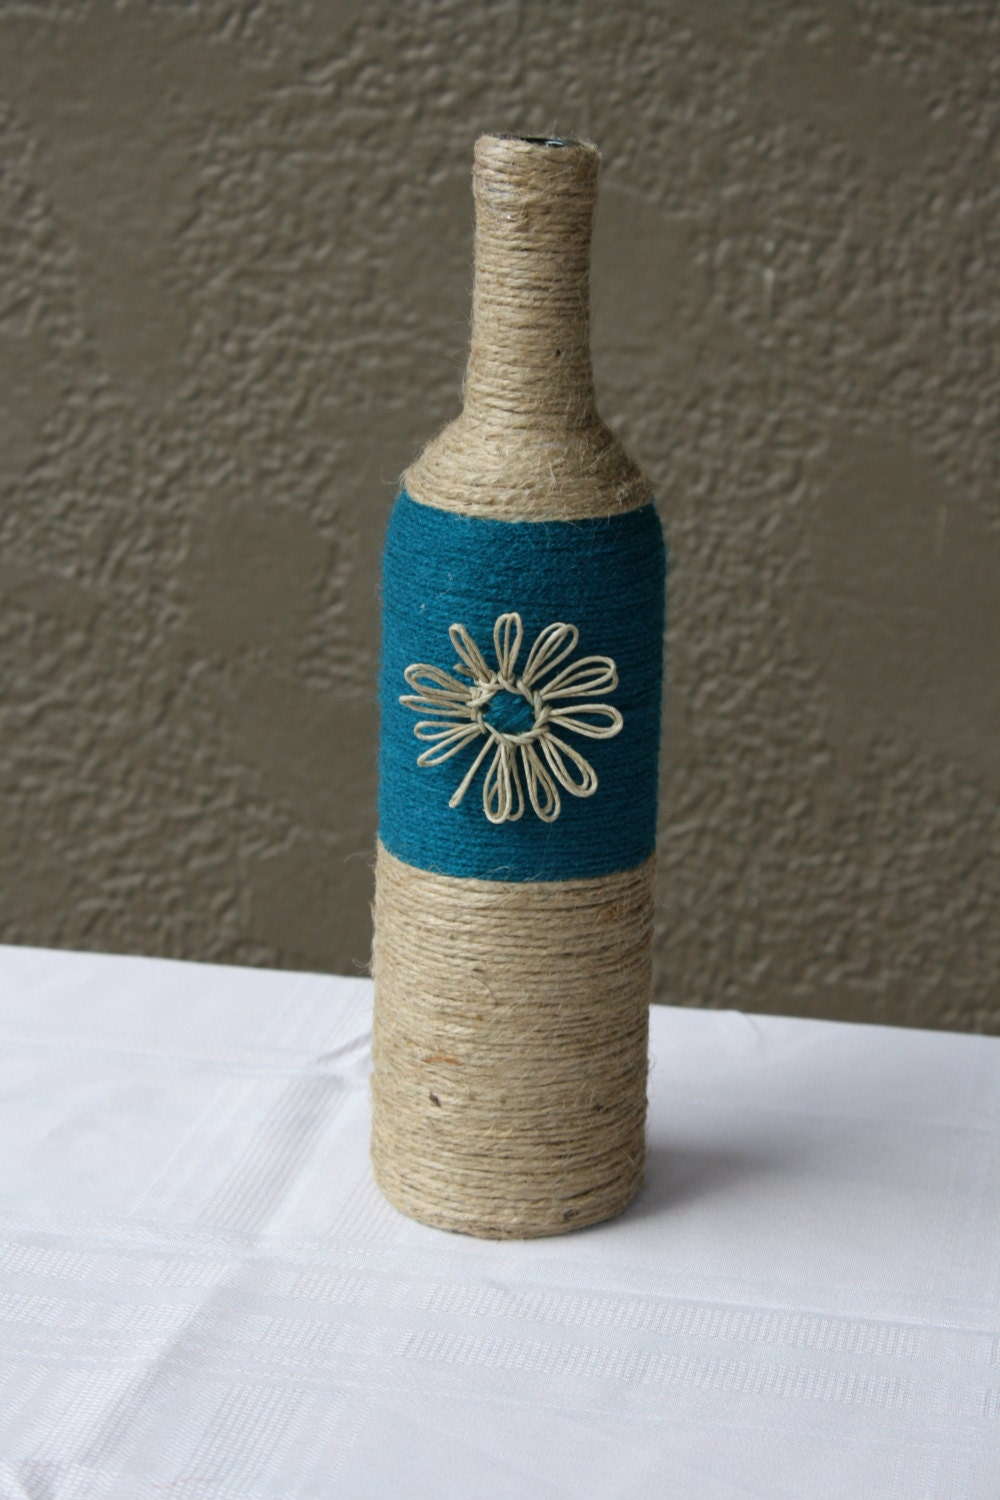 How to Make A Twine-Wrapped Wine Bottle Vase |Twine Covered Wine Bottles